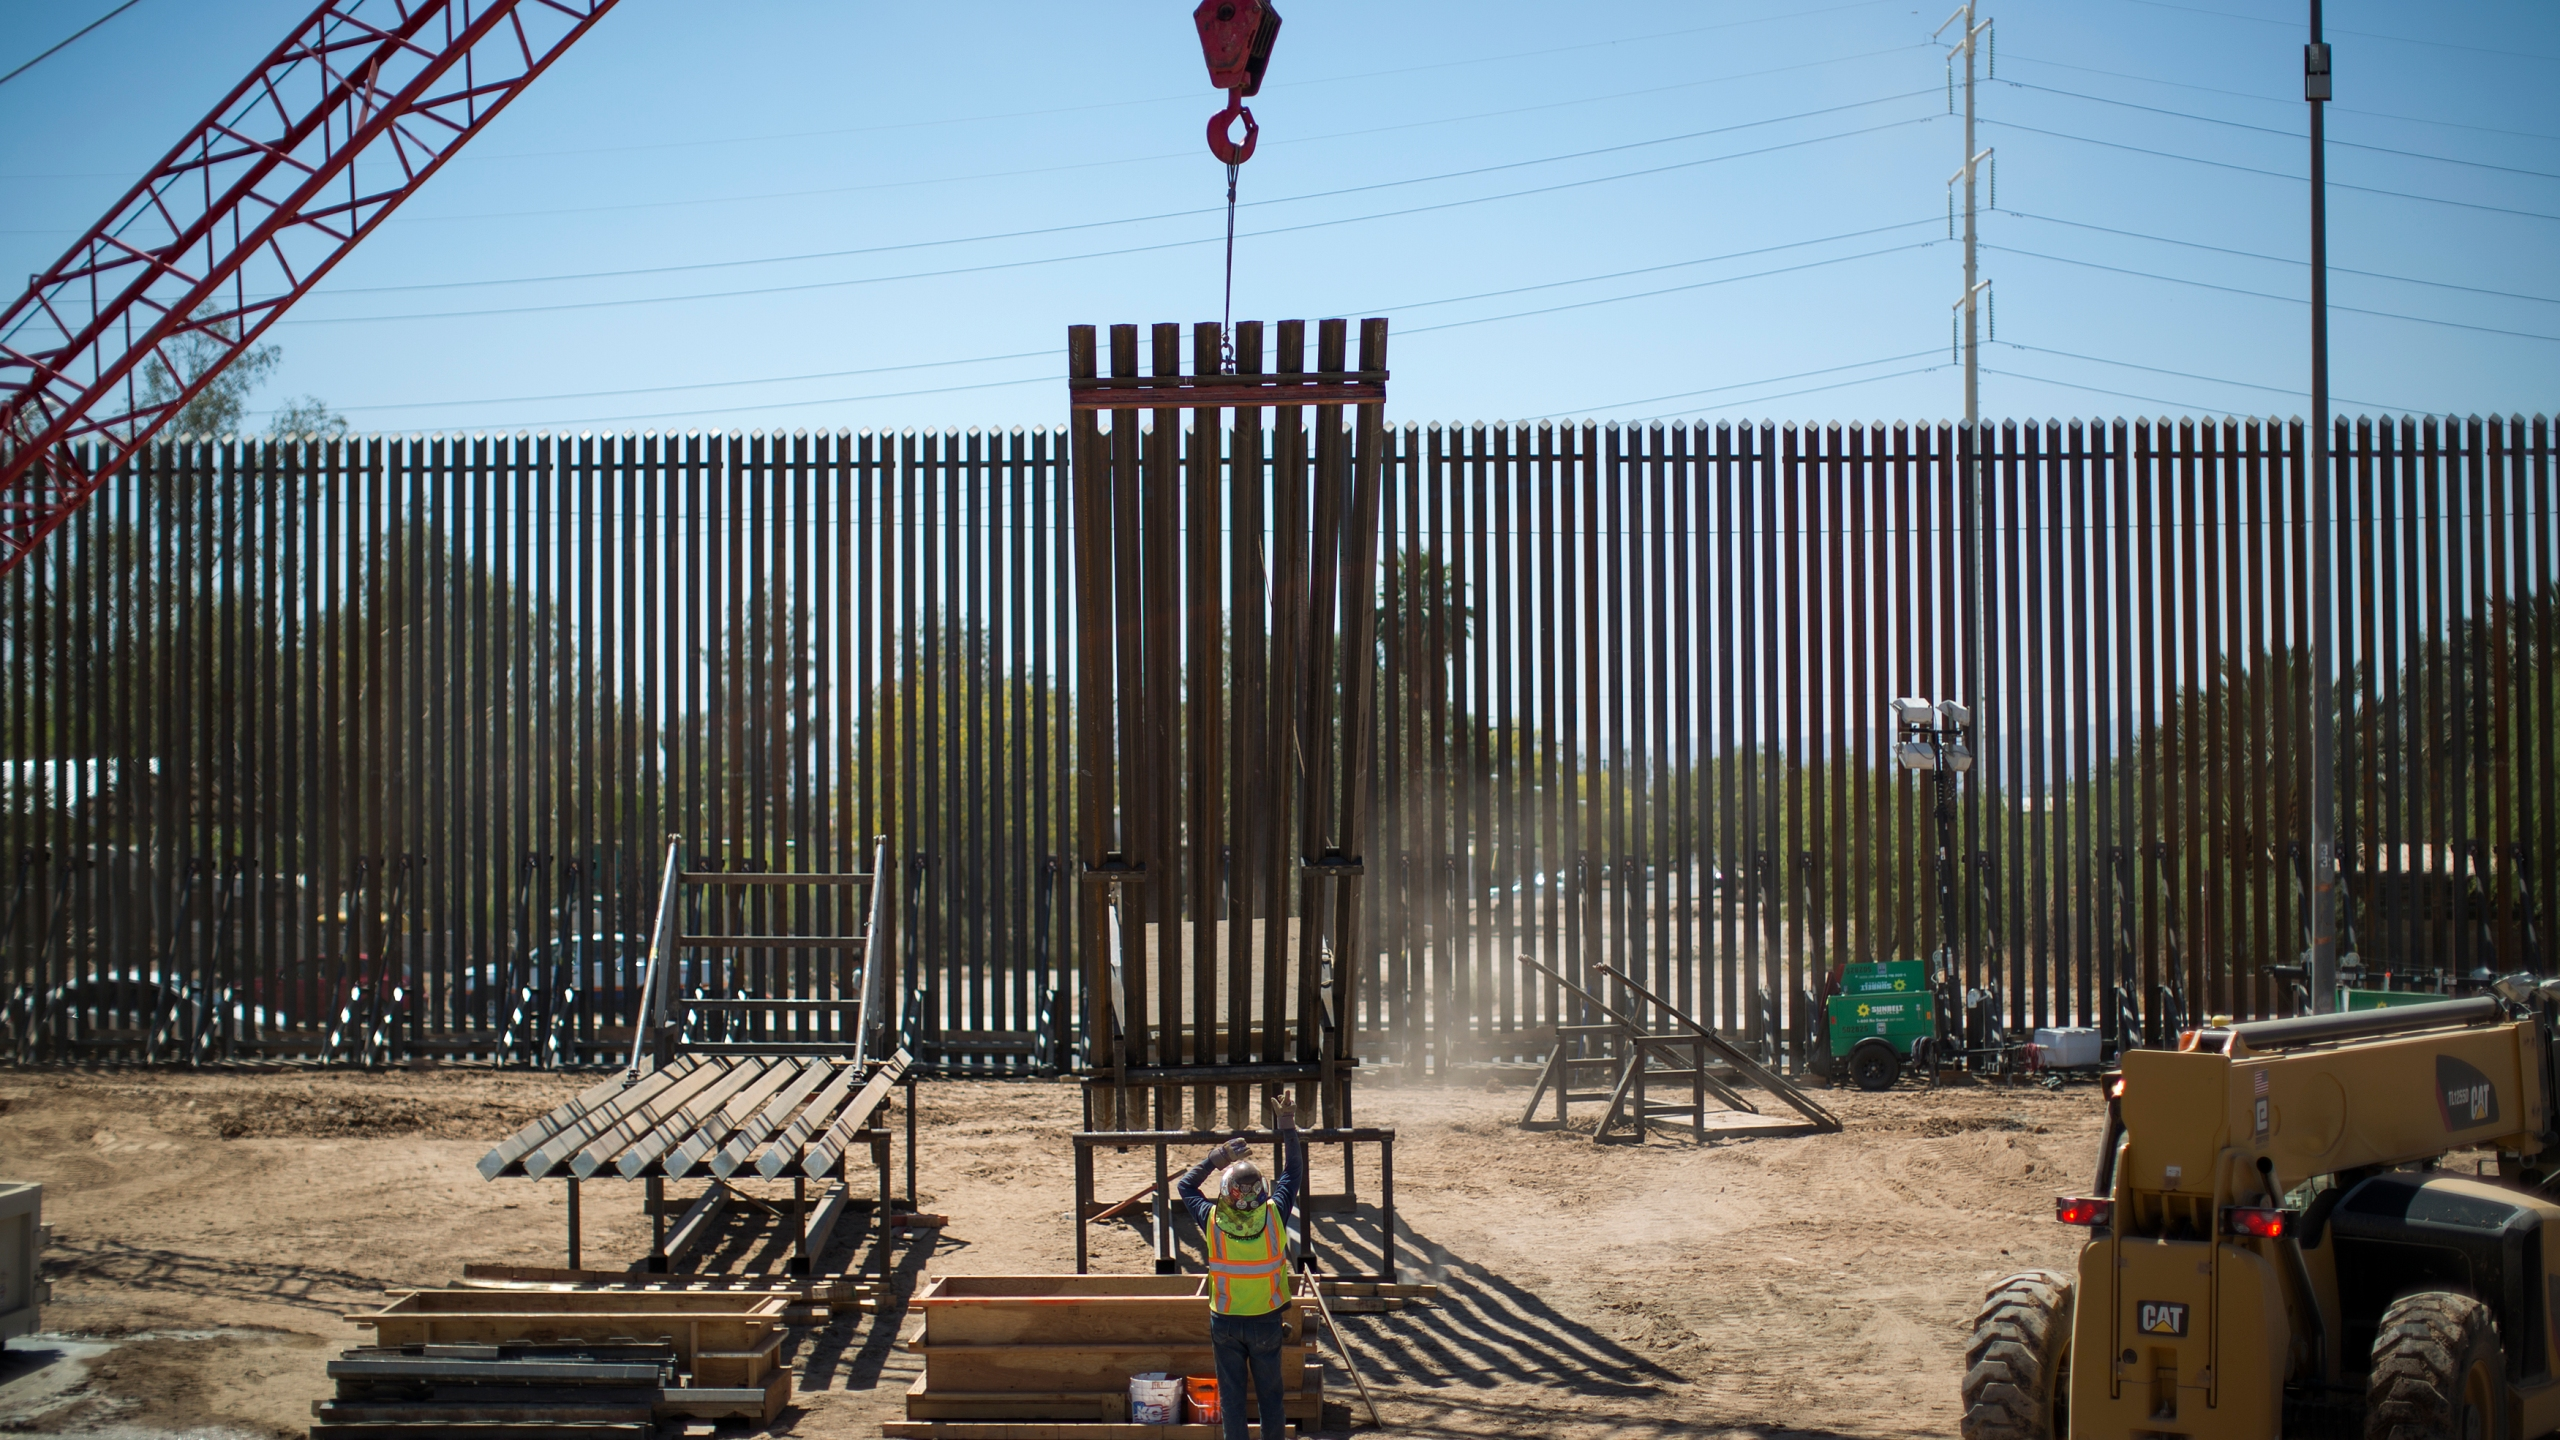 Construction of a new fence takes place as Department of Homeland Security Secretary Kirstjen Nielsen tours a replacement border fence construction site in Calexico on April 18, 2018. (Credit: David McNew / Getty Images)